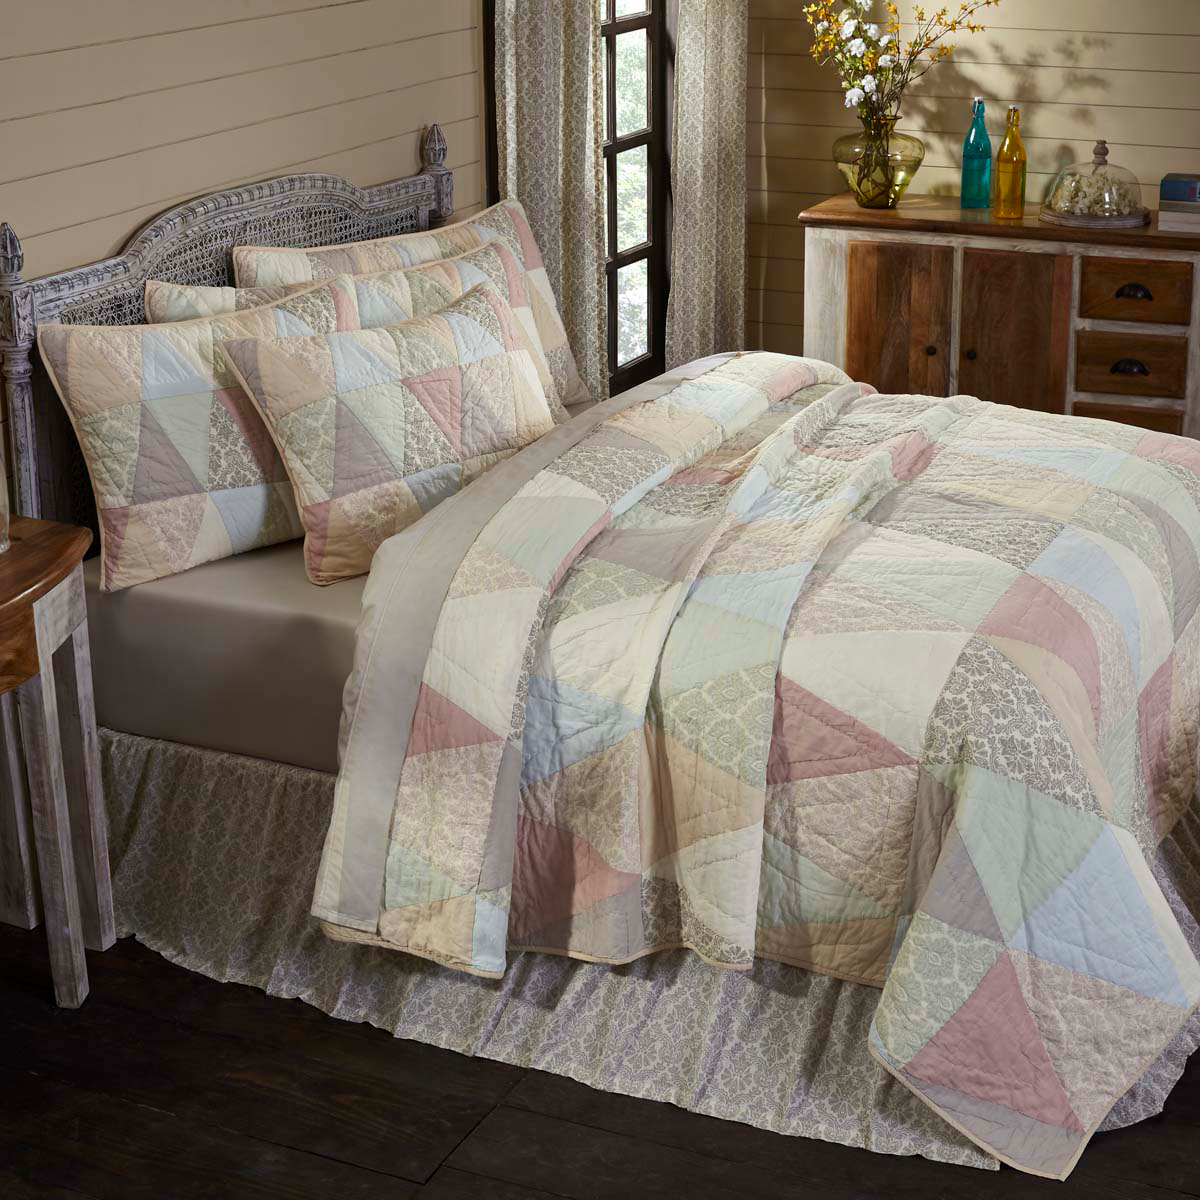 4-pc Ava King Quilt Set - Patchwork Shams & Bed Skirt - VHC Brands - Farmhouse